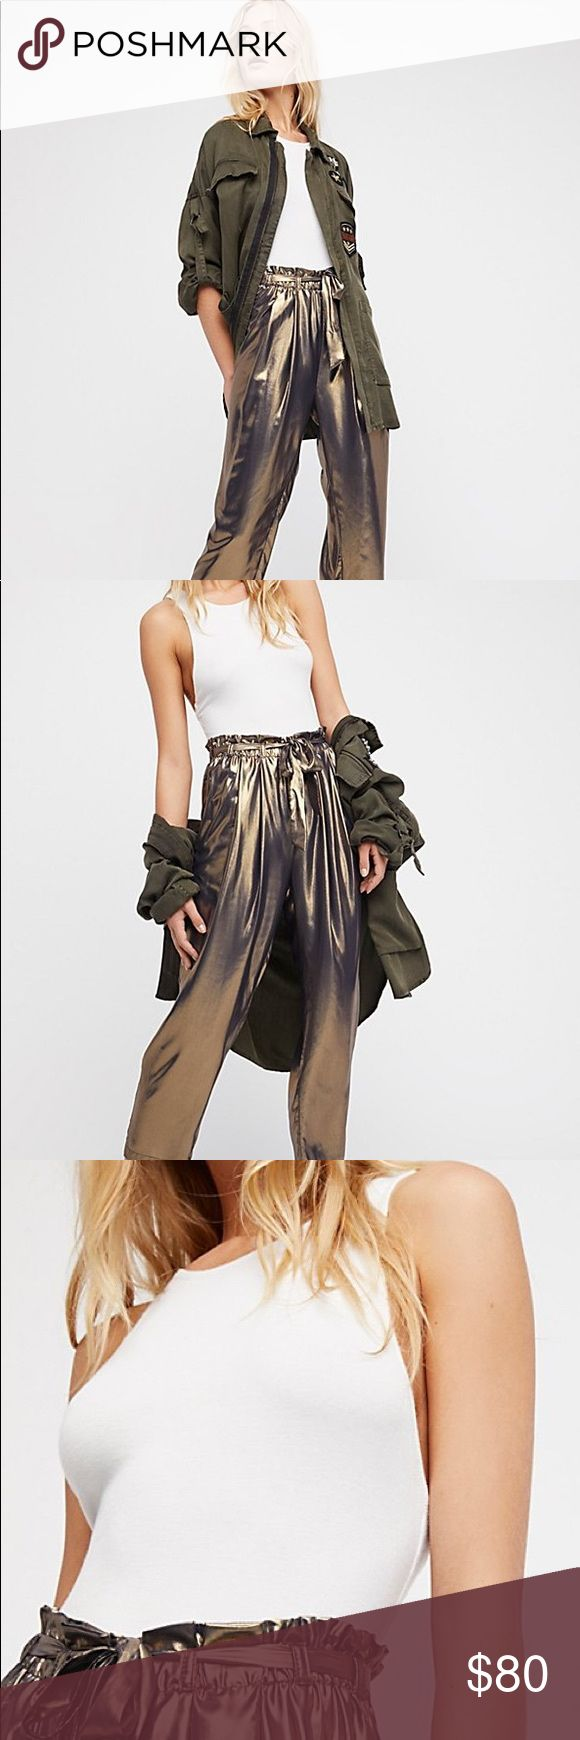 Free people metal Harlem pants Metal look harem pants from FP.Semi sheer fabric with elastic waist and front tie . 100% polyester . Hand wash only. Waist 30.5, rise 13, hips 50 , inseam 25. Brand new. Free People Pants